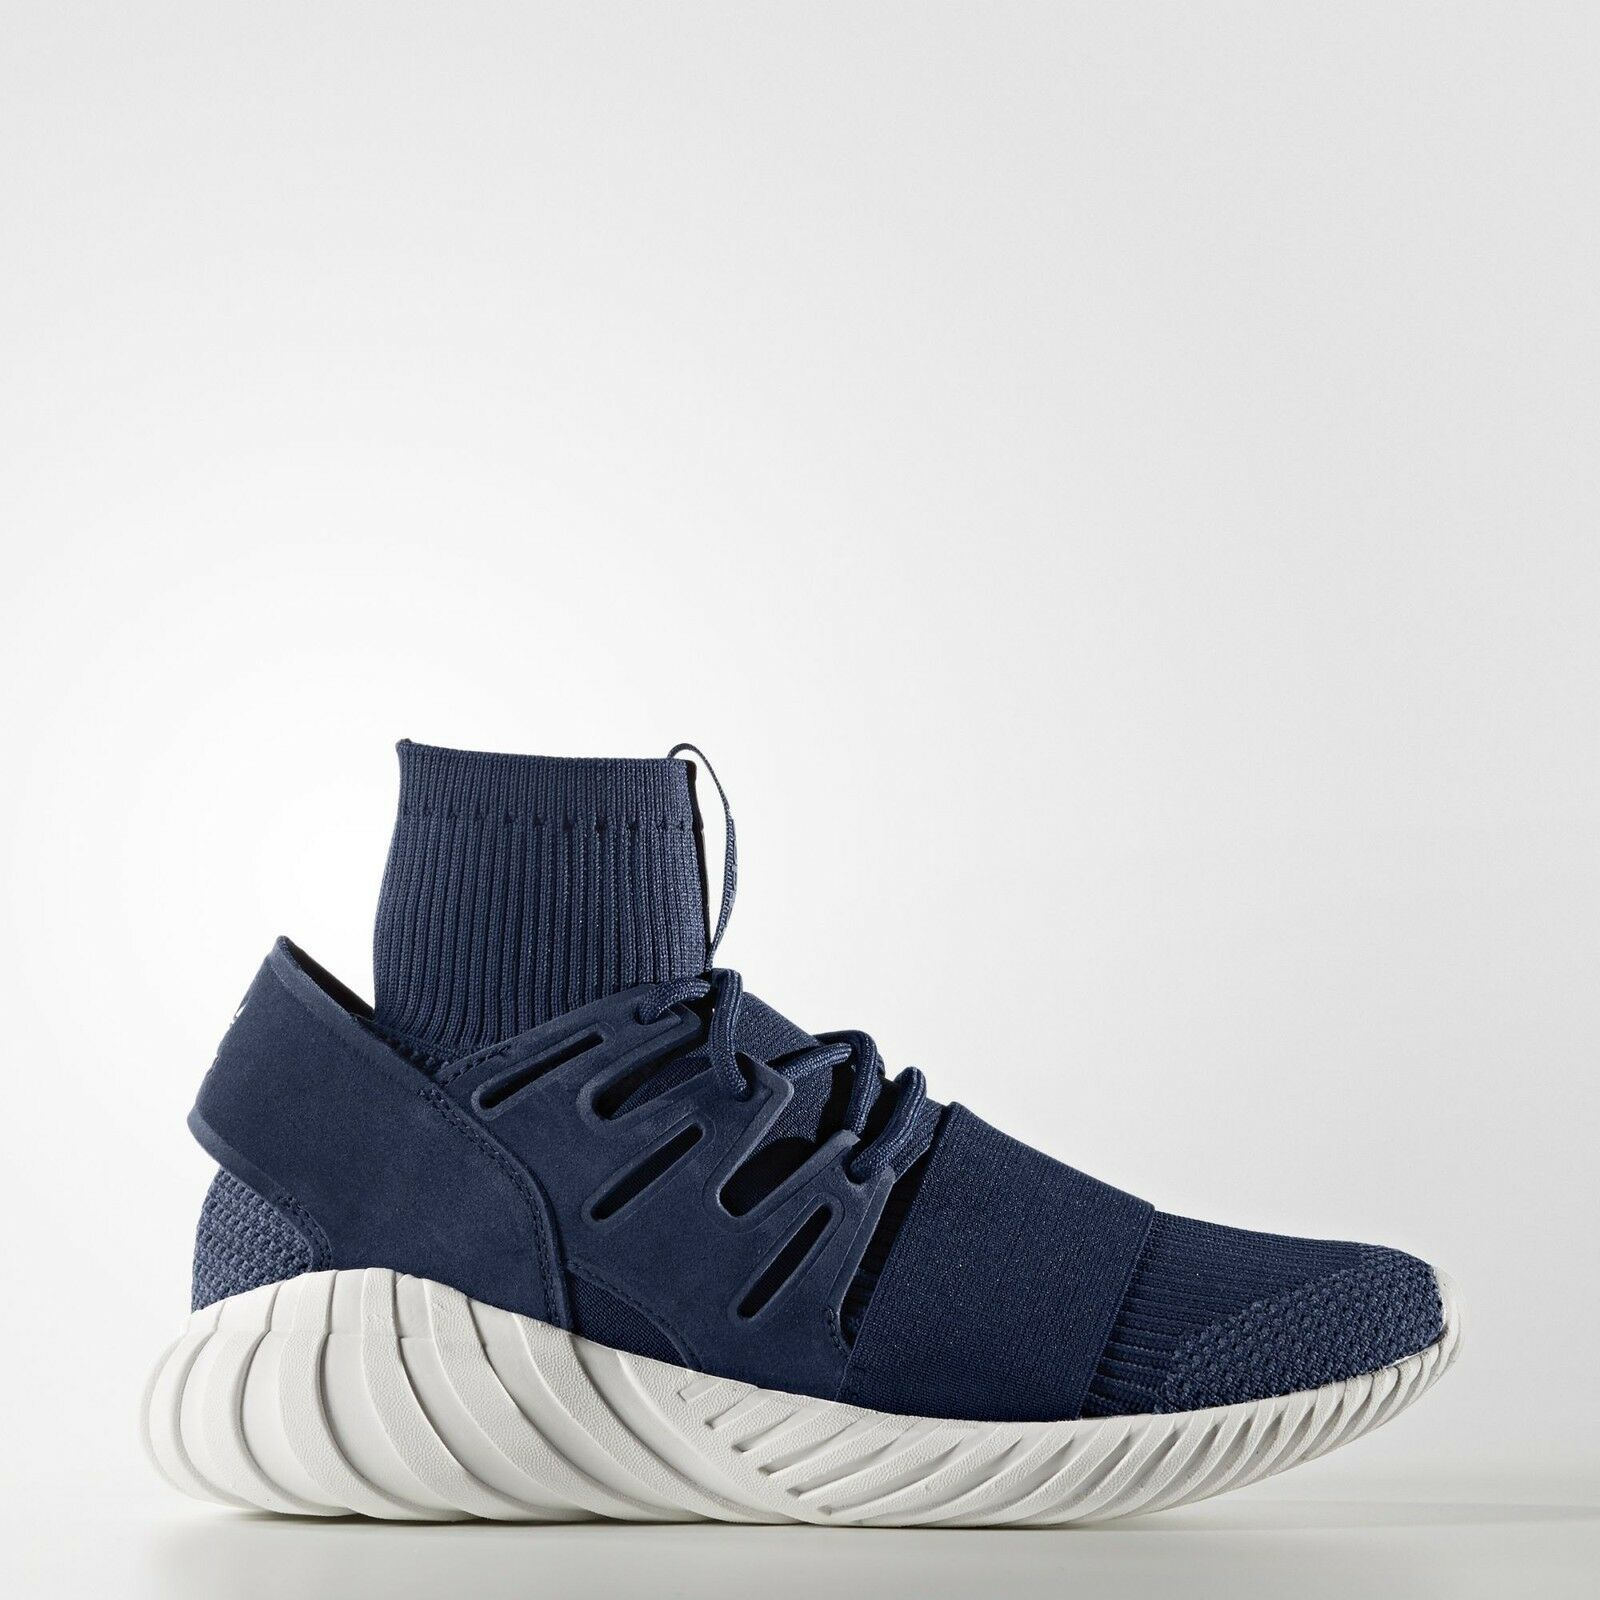 Adidas Originals Tubular Doom PK Primeknit boost Night Marine Navy Men boost Primeknit S80103 9c4bc2